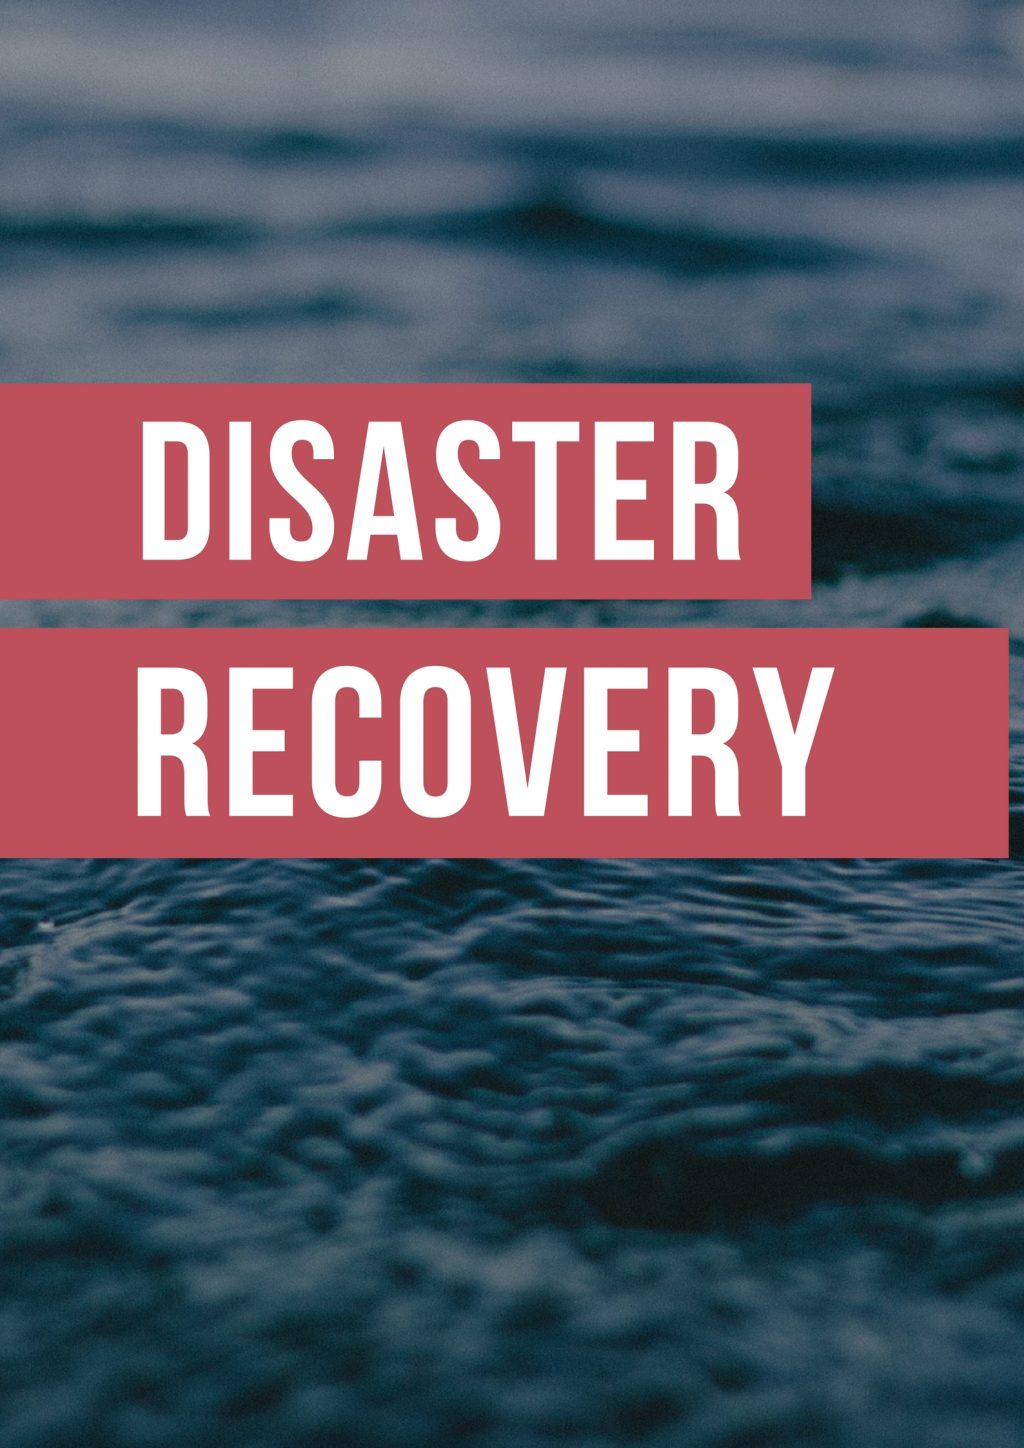 Disaster Recovery Planning – Be a step ahead